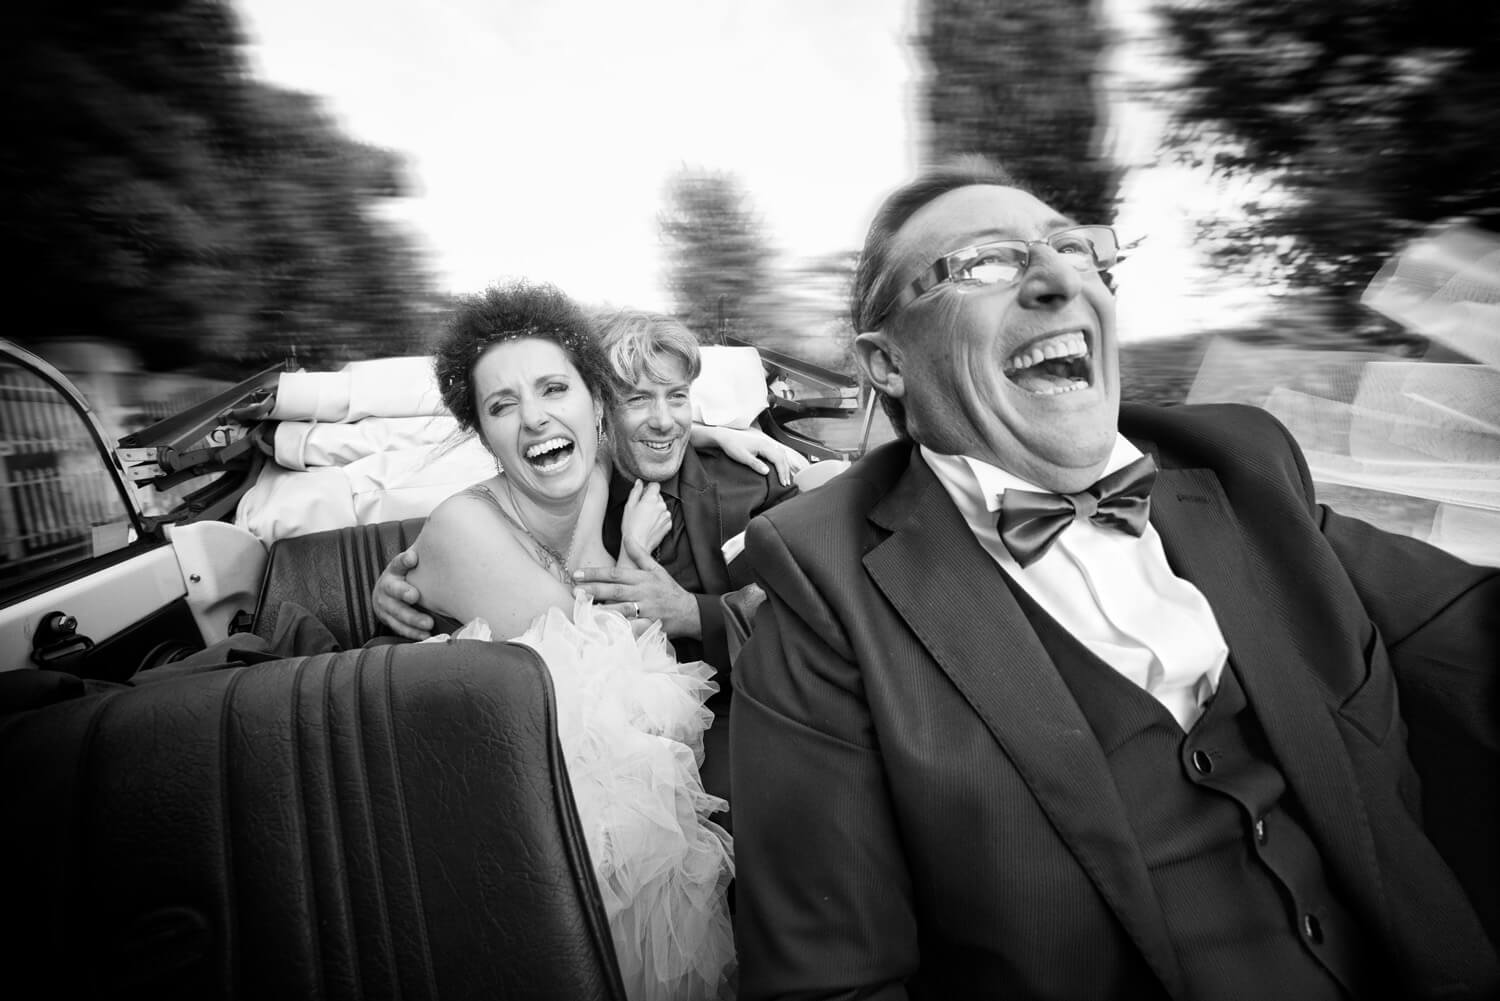 Funny Moments at wedding day. Bride CAr